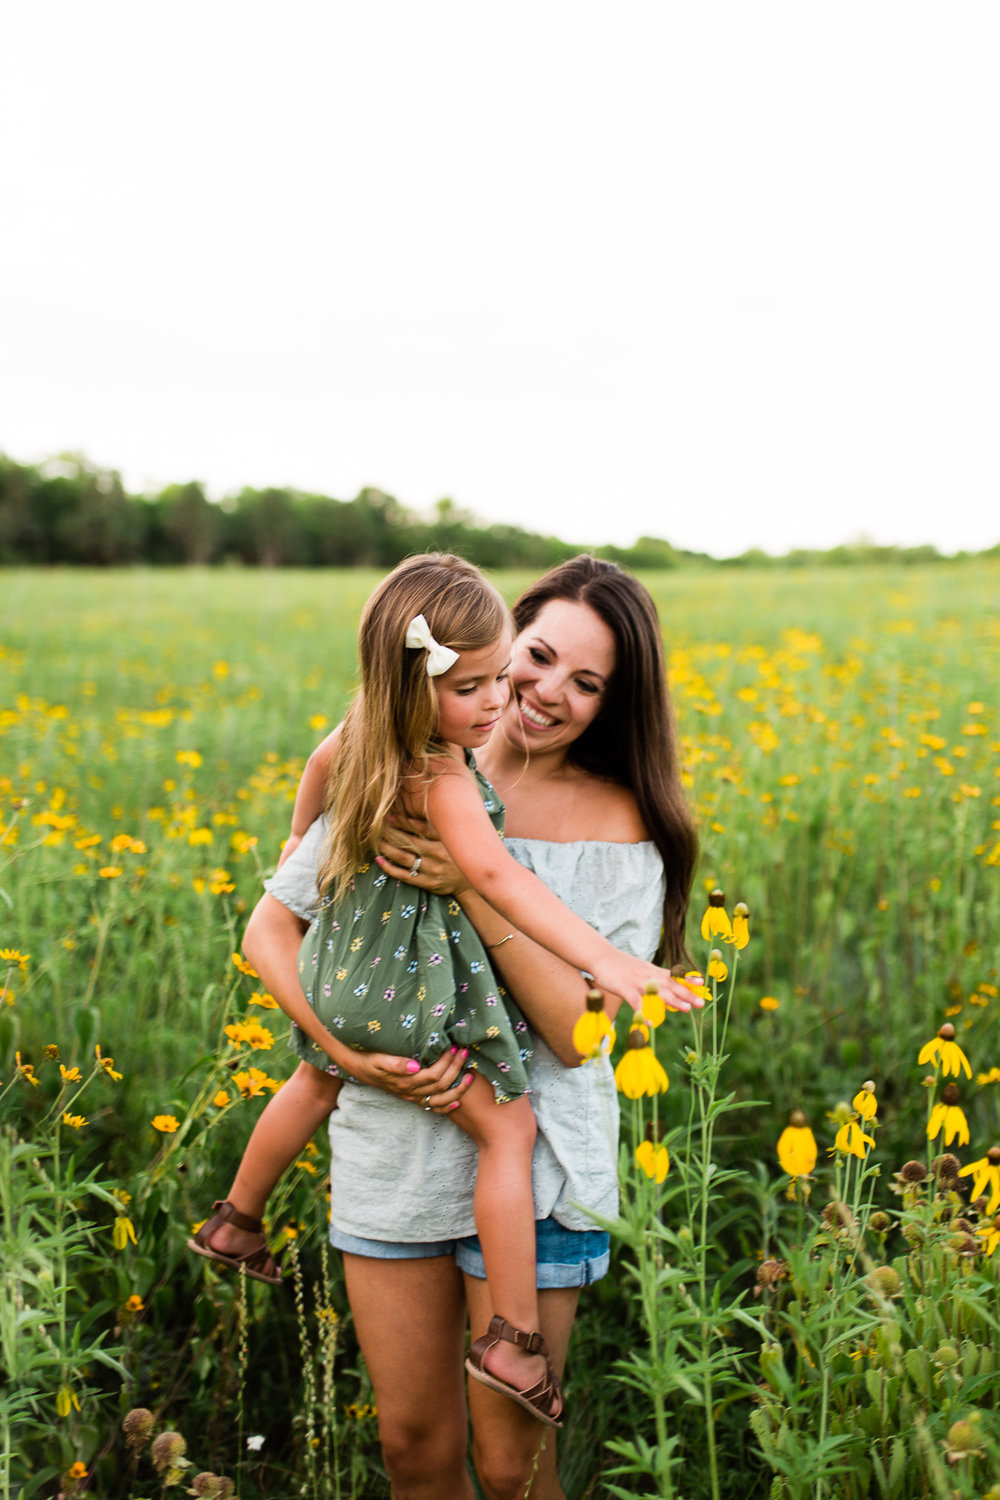 Mother carries daughter in a field of flowers, mommy and me session at Shawnee Mission Park, Kansas City family photographer